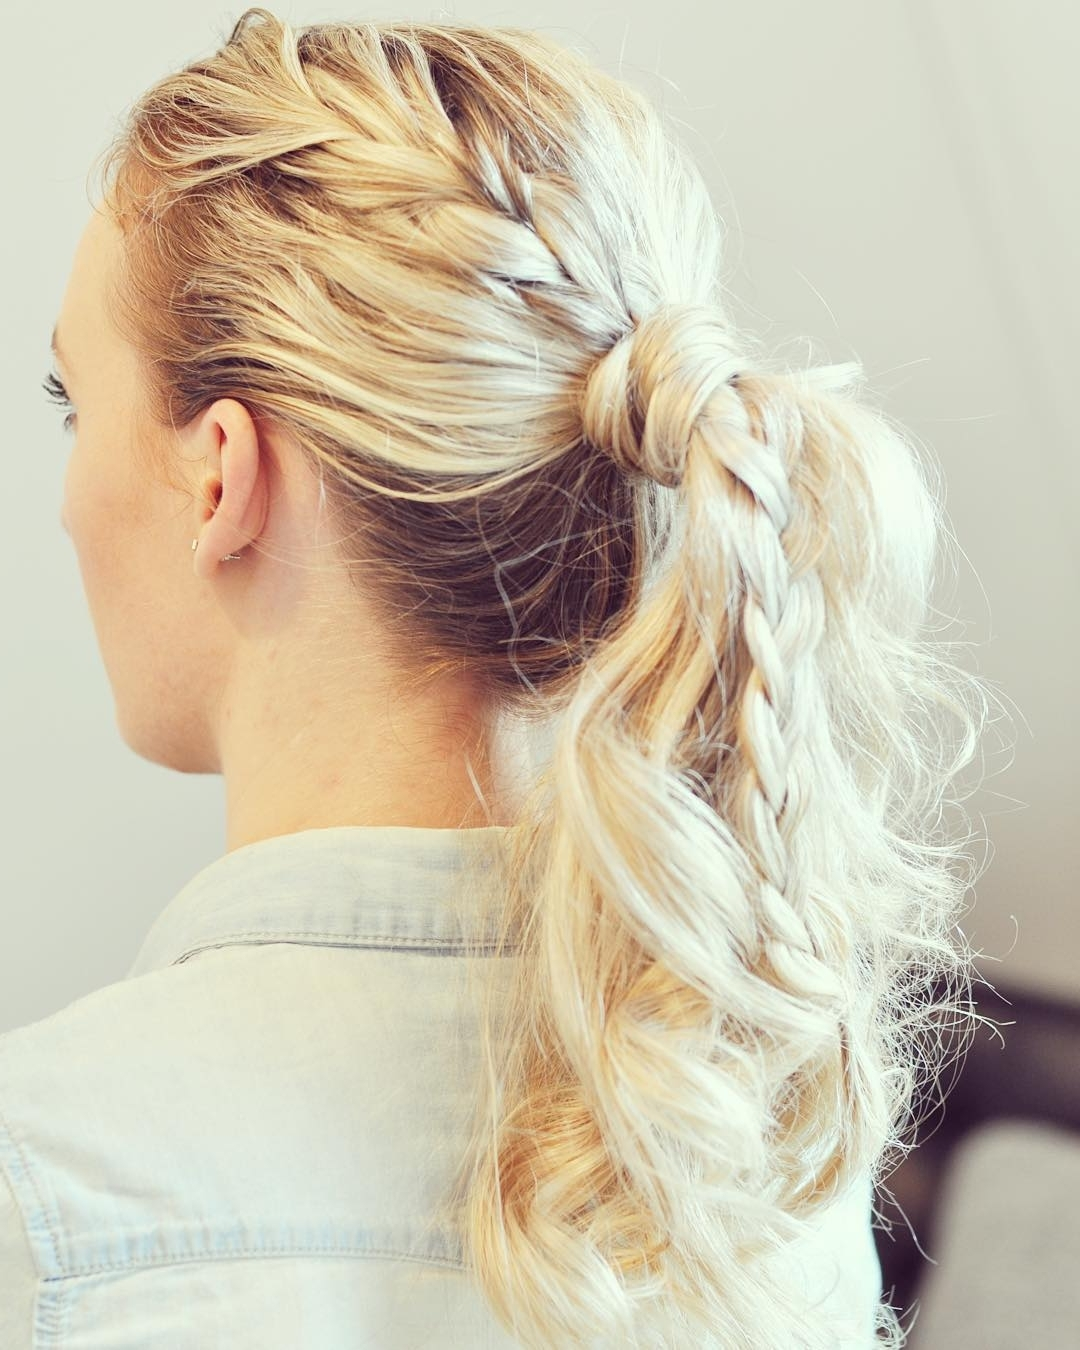 30 Braided Ponytail Hairstyles To Slay In  (View 1 of 20)